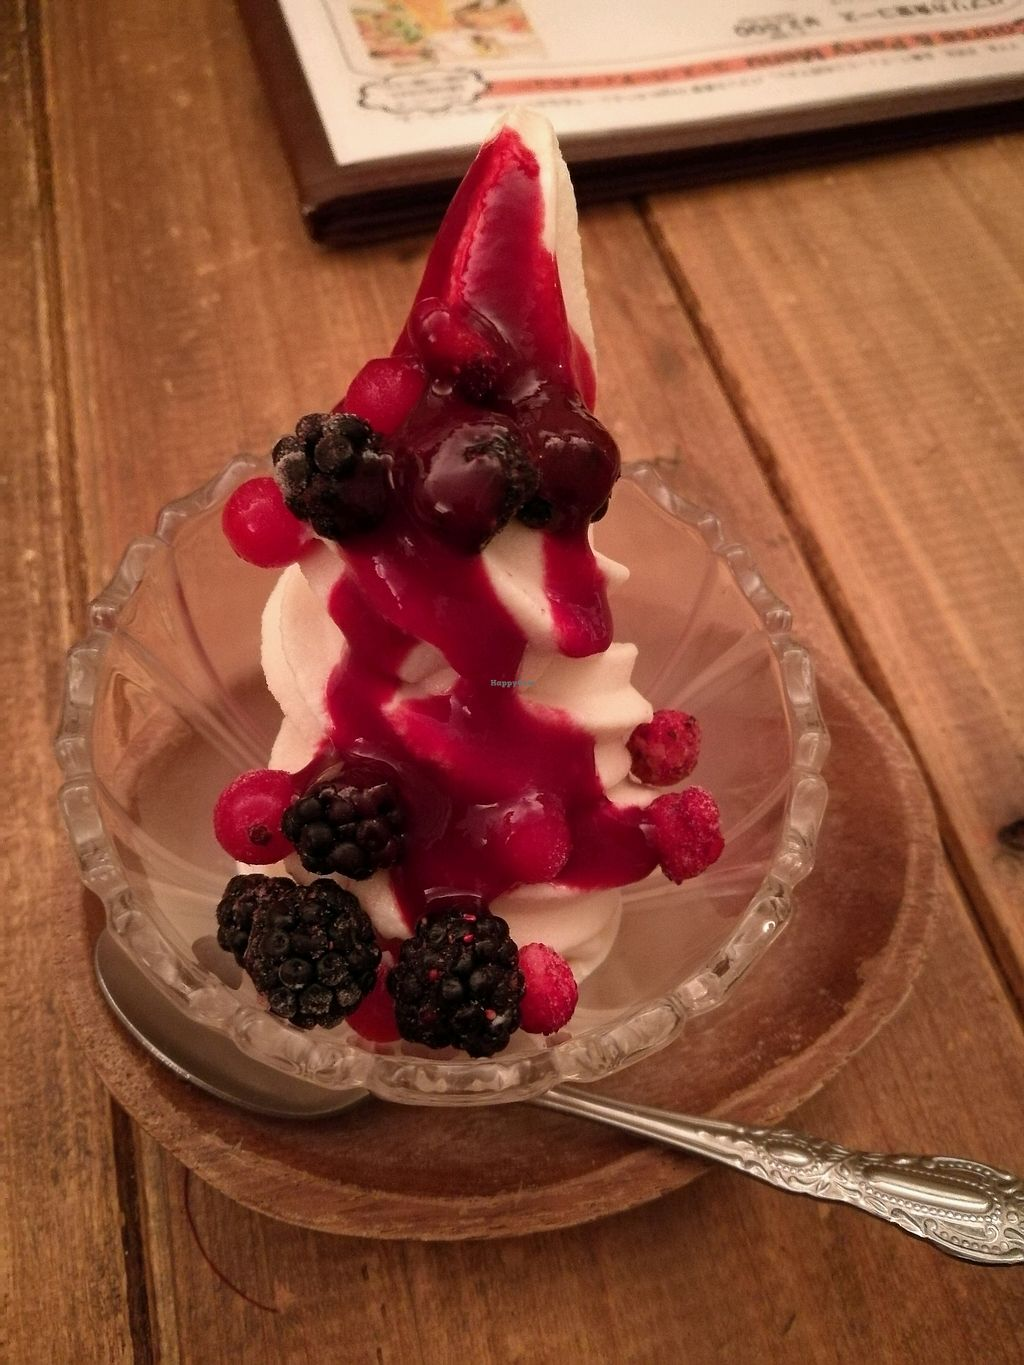 """Photo of Paprika Shokudo Vegan  by <a href=""""/members/profile/Felicious"""">Felicious</a> <br/>berry soy soft serve <br/> April 10, 2018  - <a href='/contact/abuse/image/45738/383274'>Report</a>"""